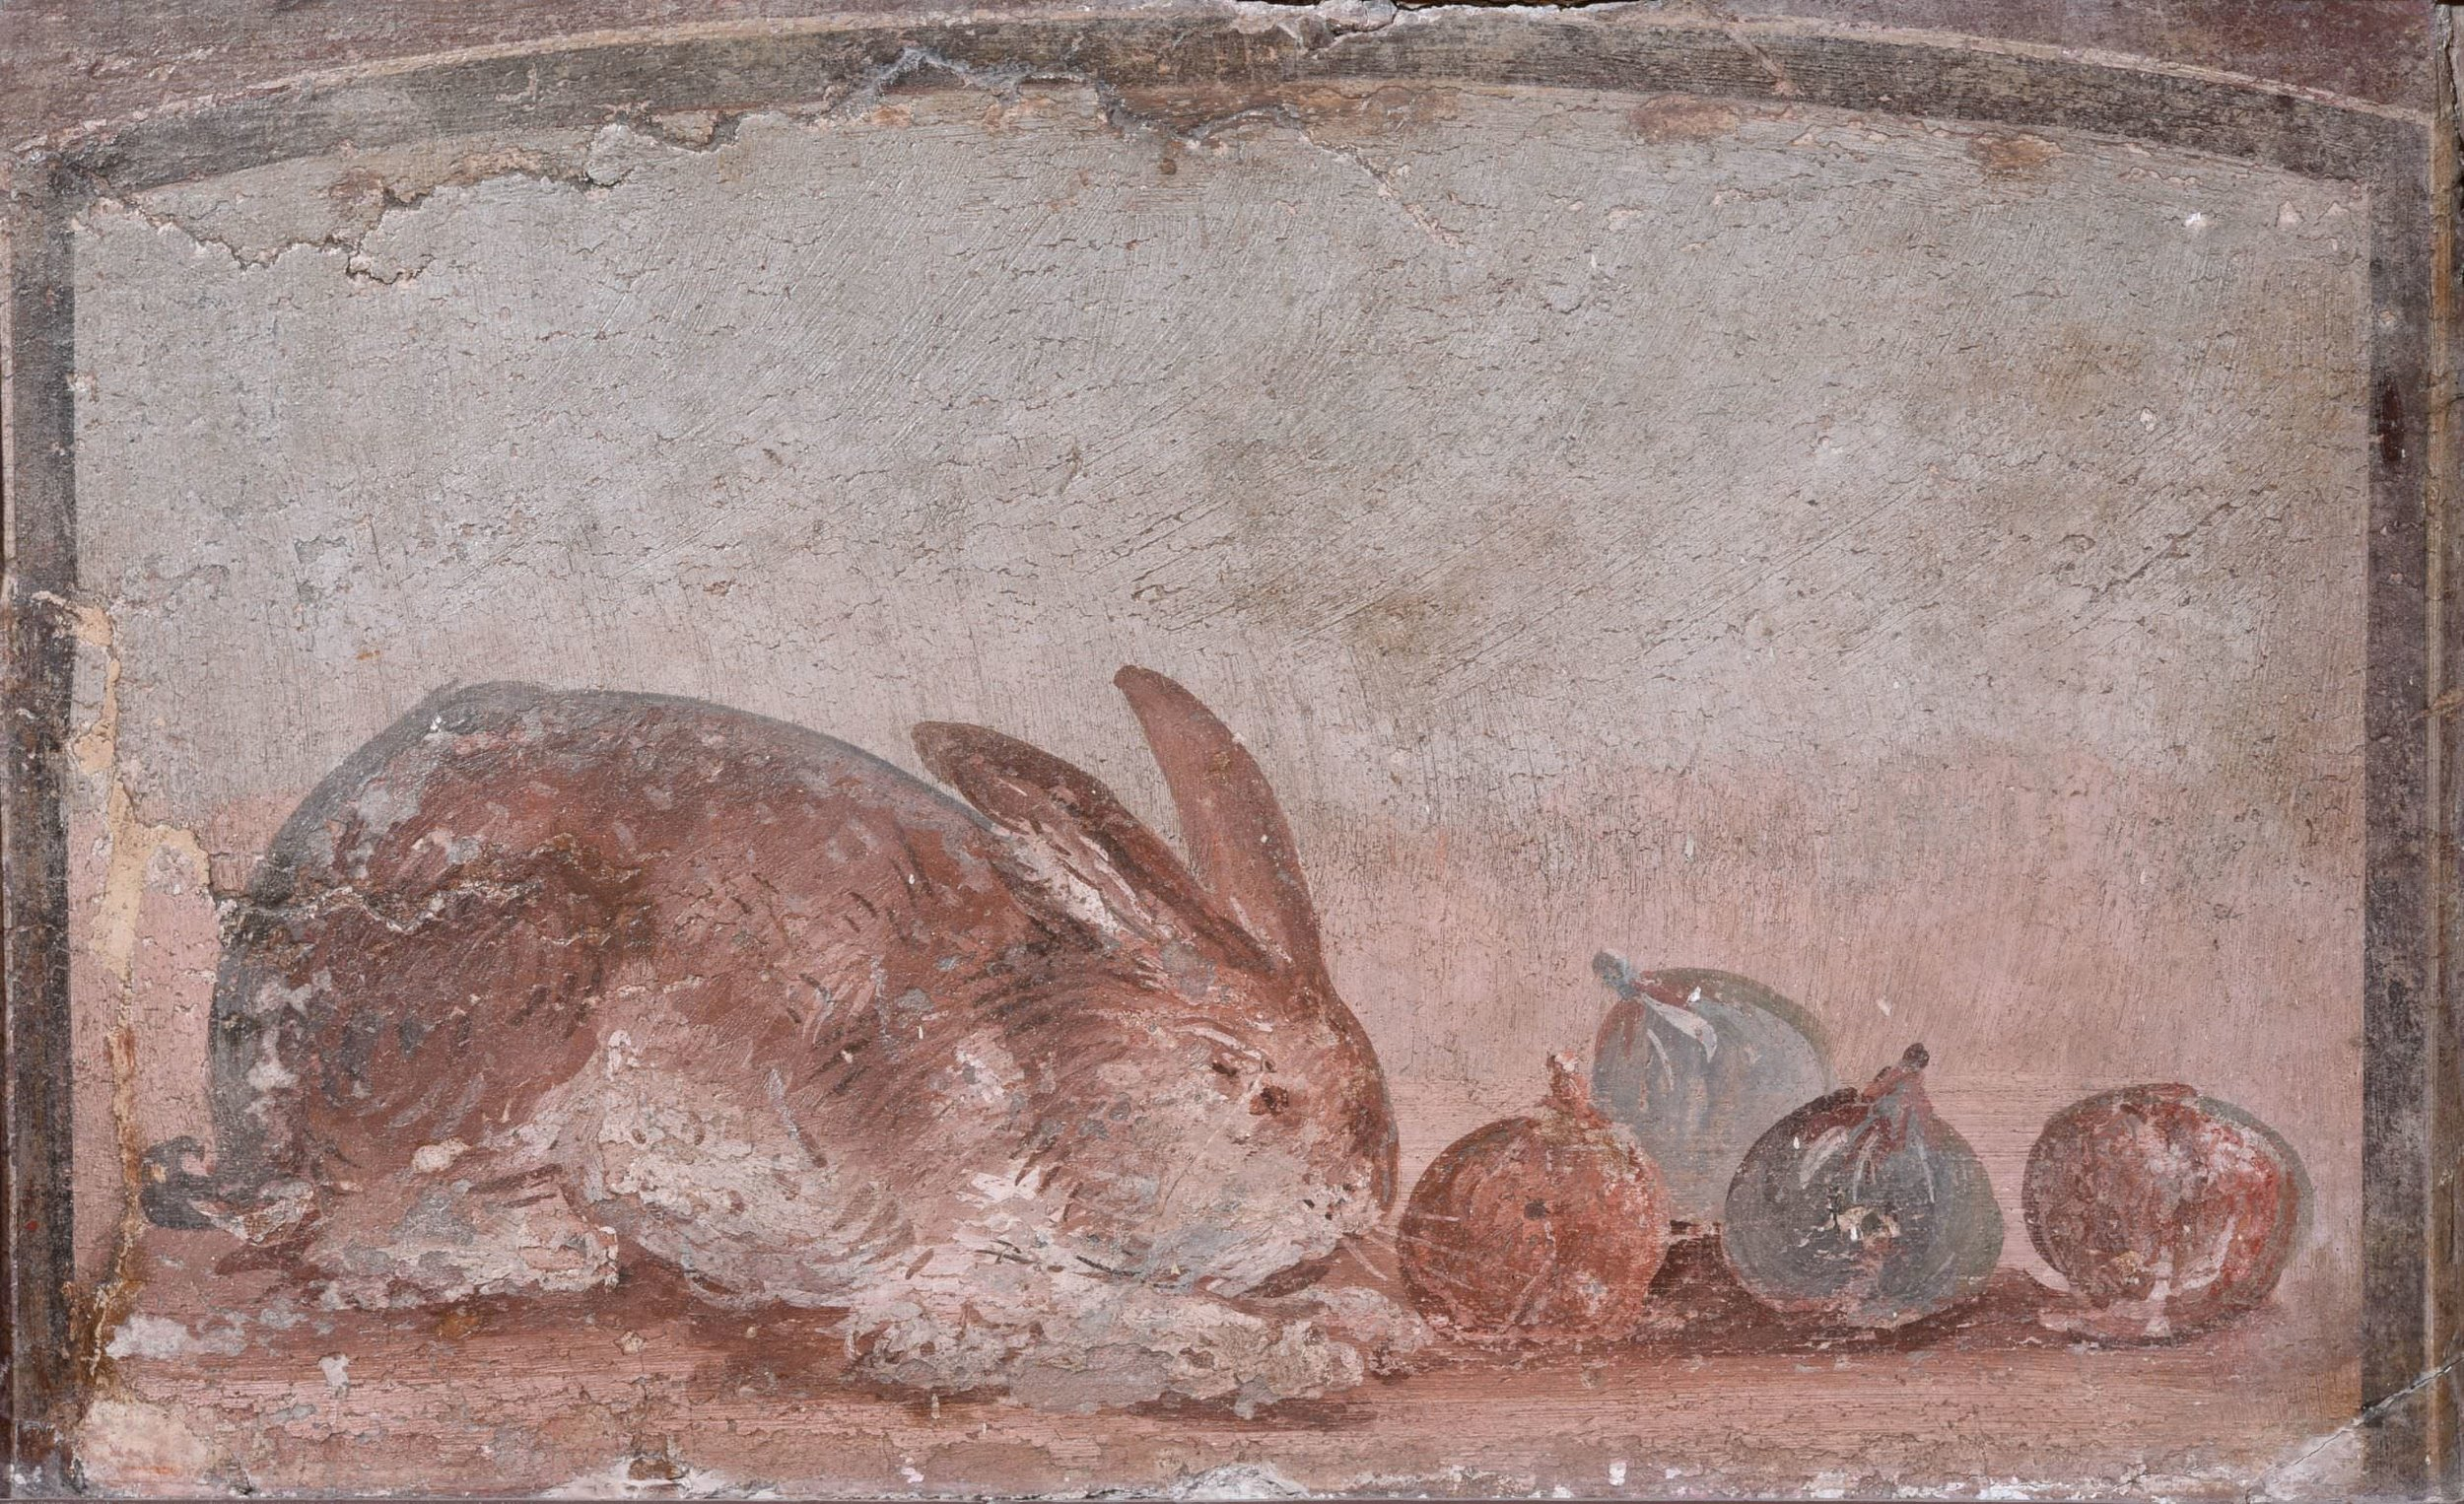 Still life wall panel fresco showing a rabbit nibbling at figs, AD 40–79. Pompeii (35 x 42 cm). Museo Archeologico Nazionale di Napoli